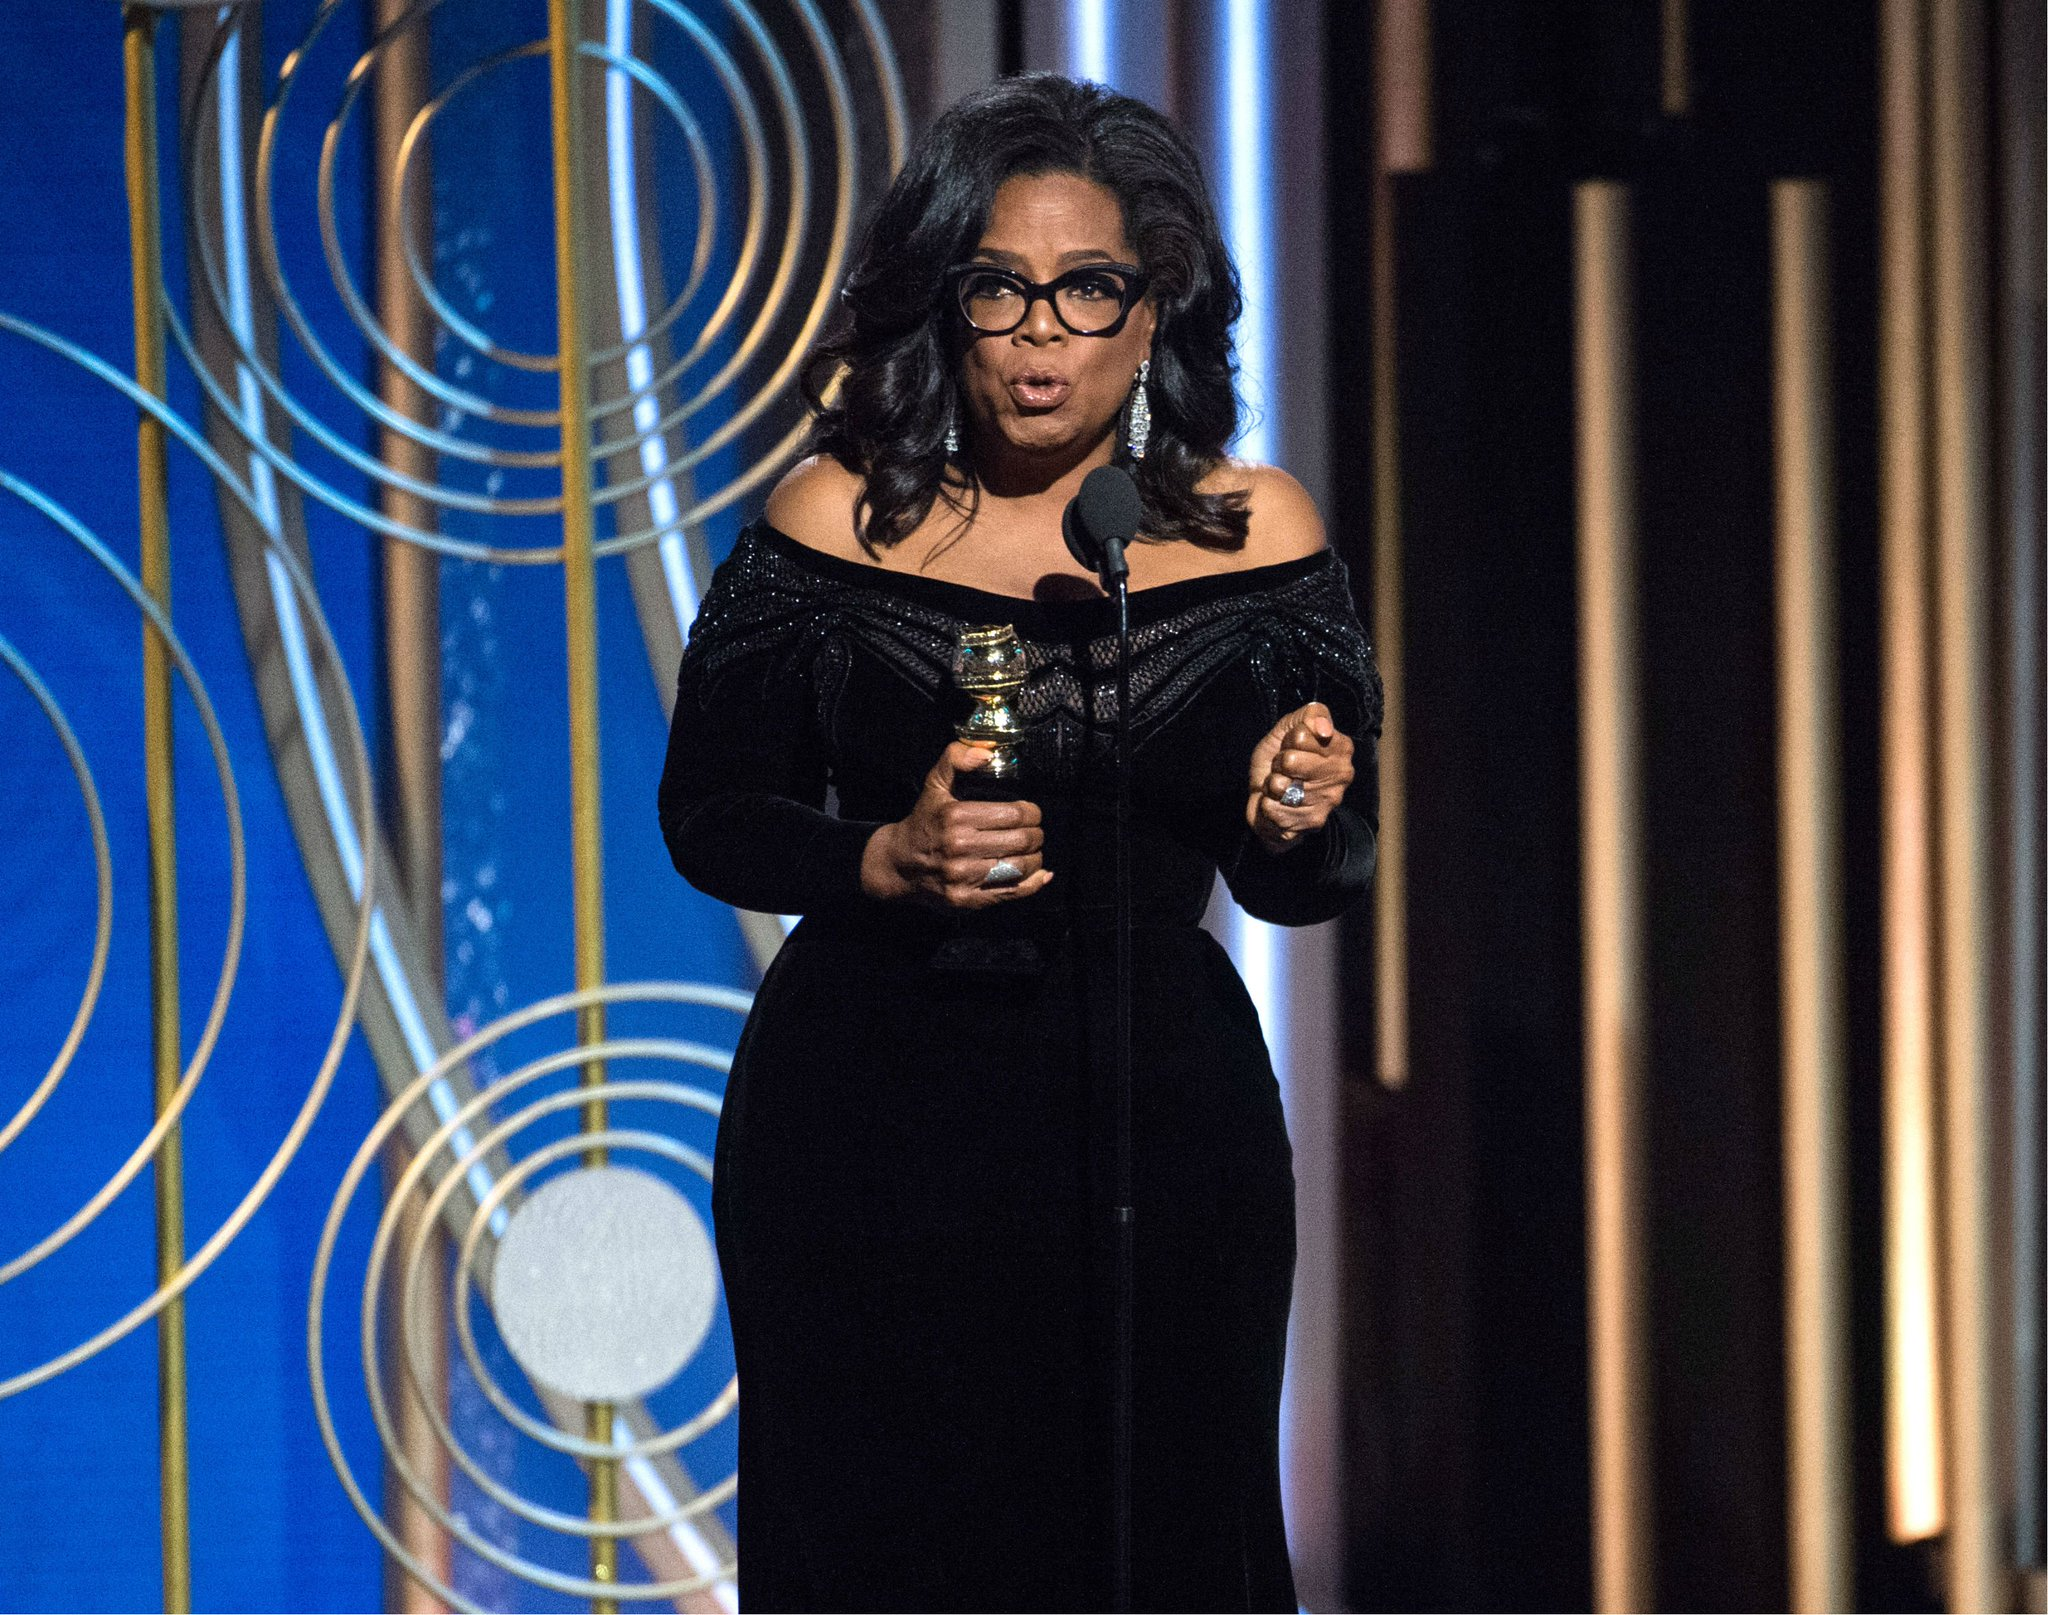 RT @Broadcastnow: We should all listen to Oprah, says @ninderb https://t.co/ngF18QVrUy https://t.co/CJQdwNUFAc